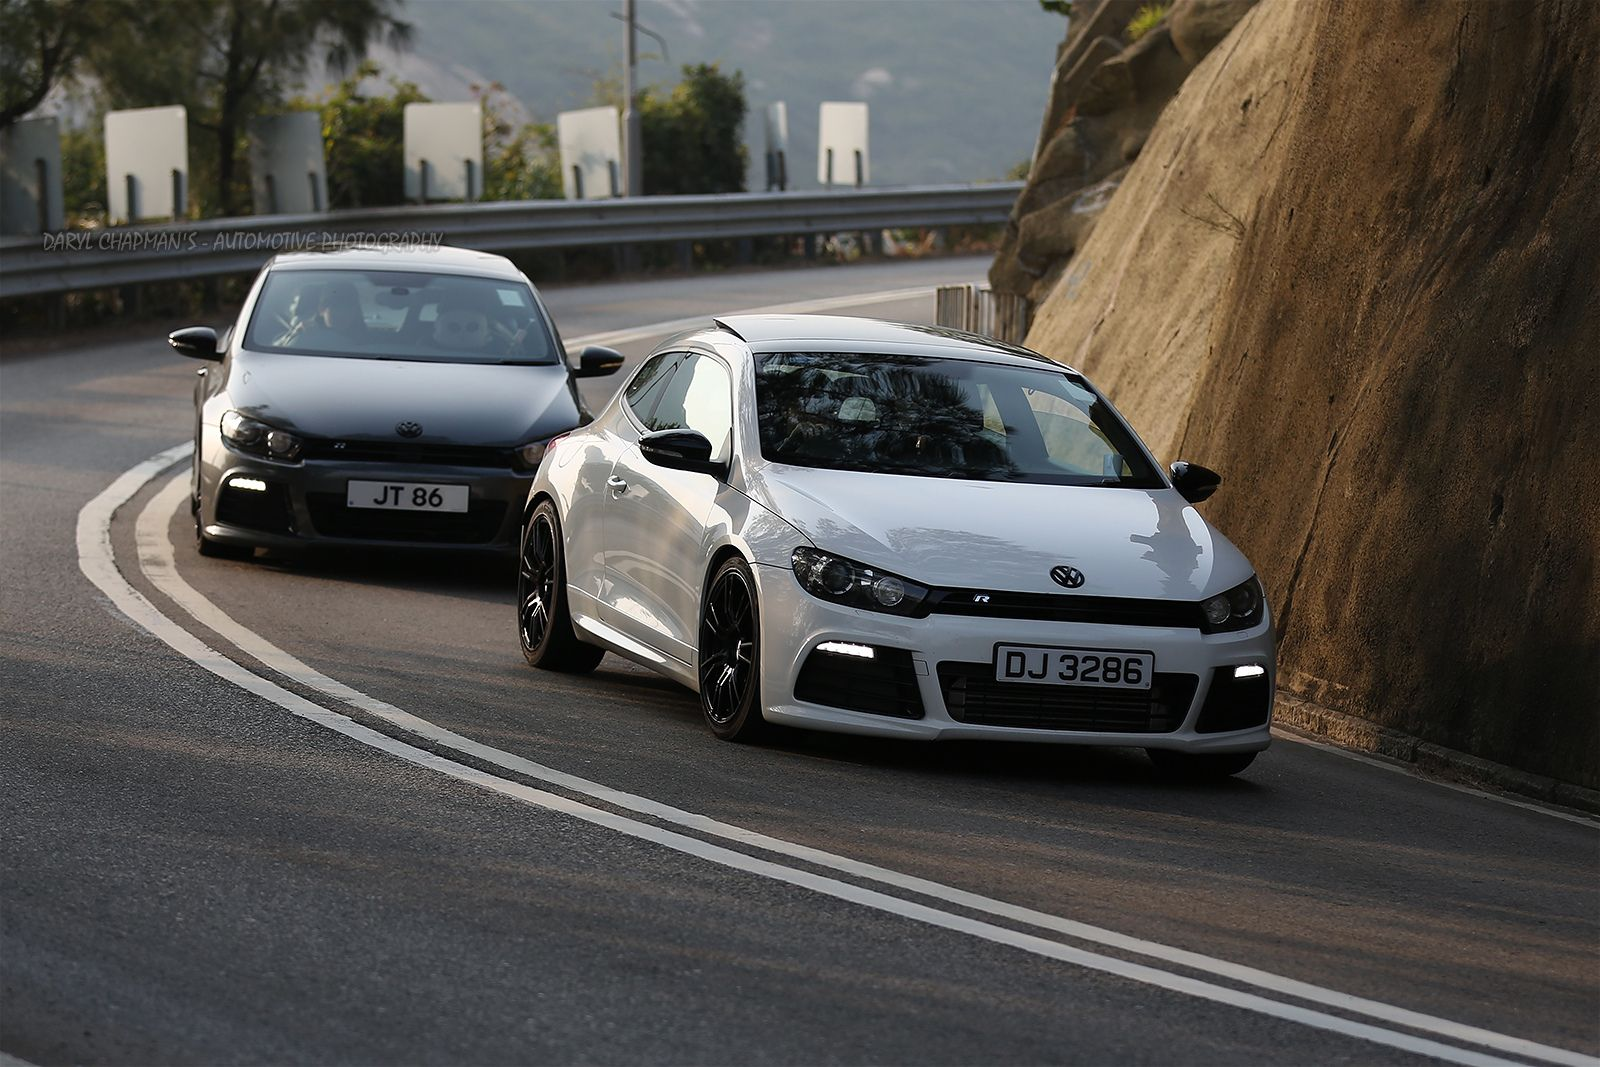 Volkswagen scirocco for sale in usa - Vw Scirocco R Twins